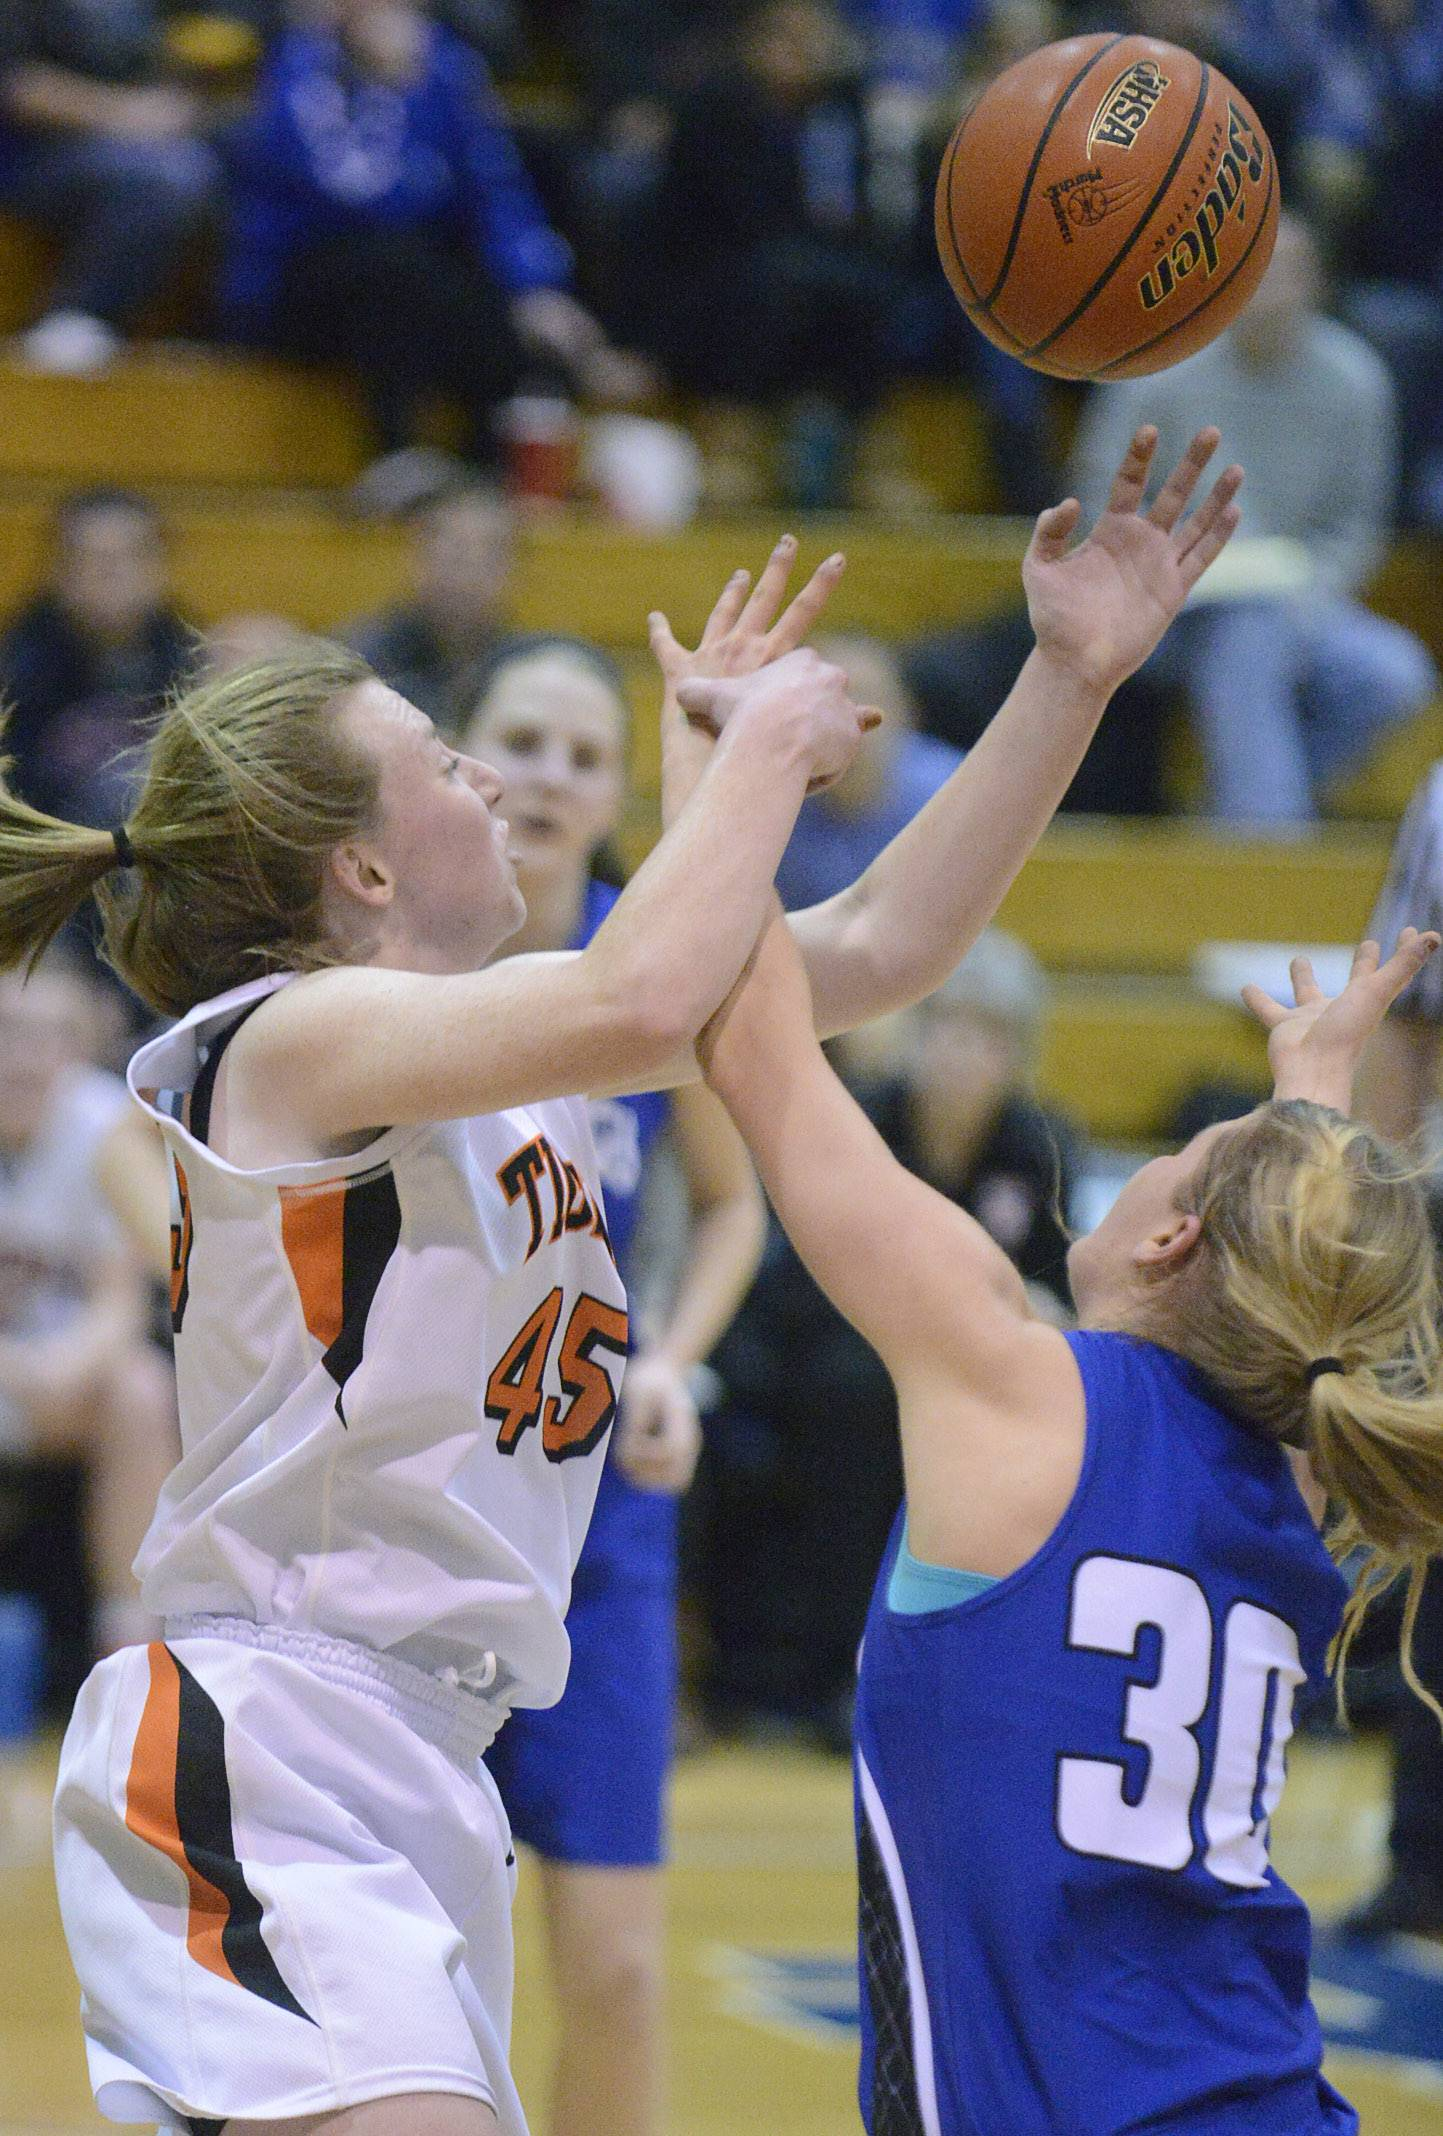 Wheaton Warrenville South's Meghan Waldron and Geneva's Janie McCloughhan fight for a rebound in the second quarter.